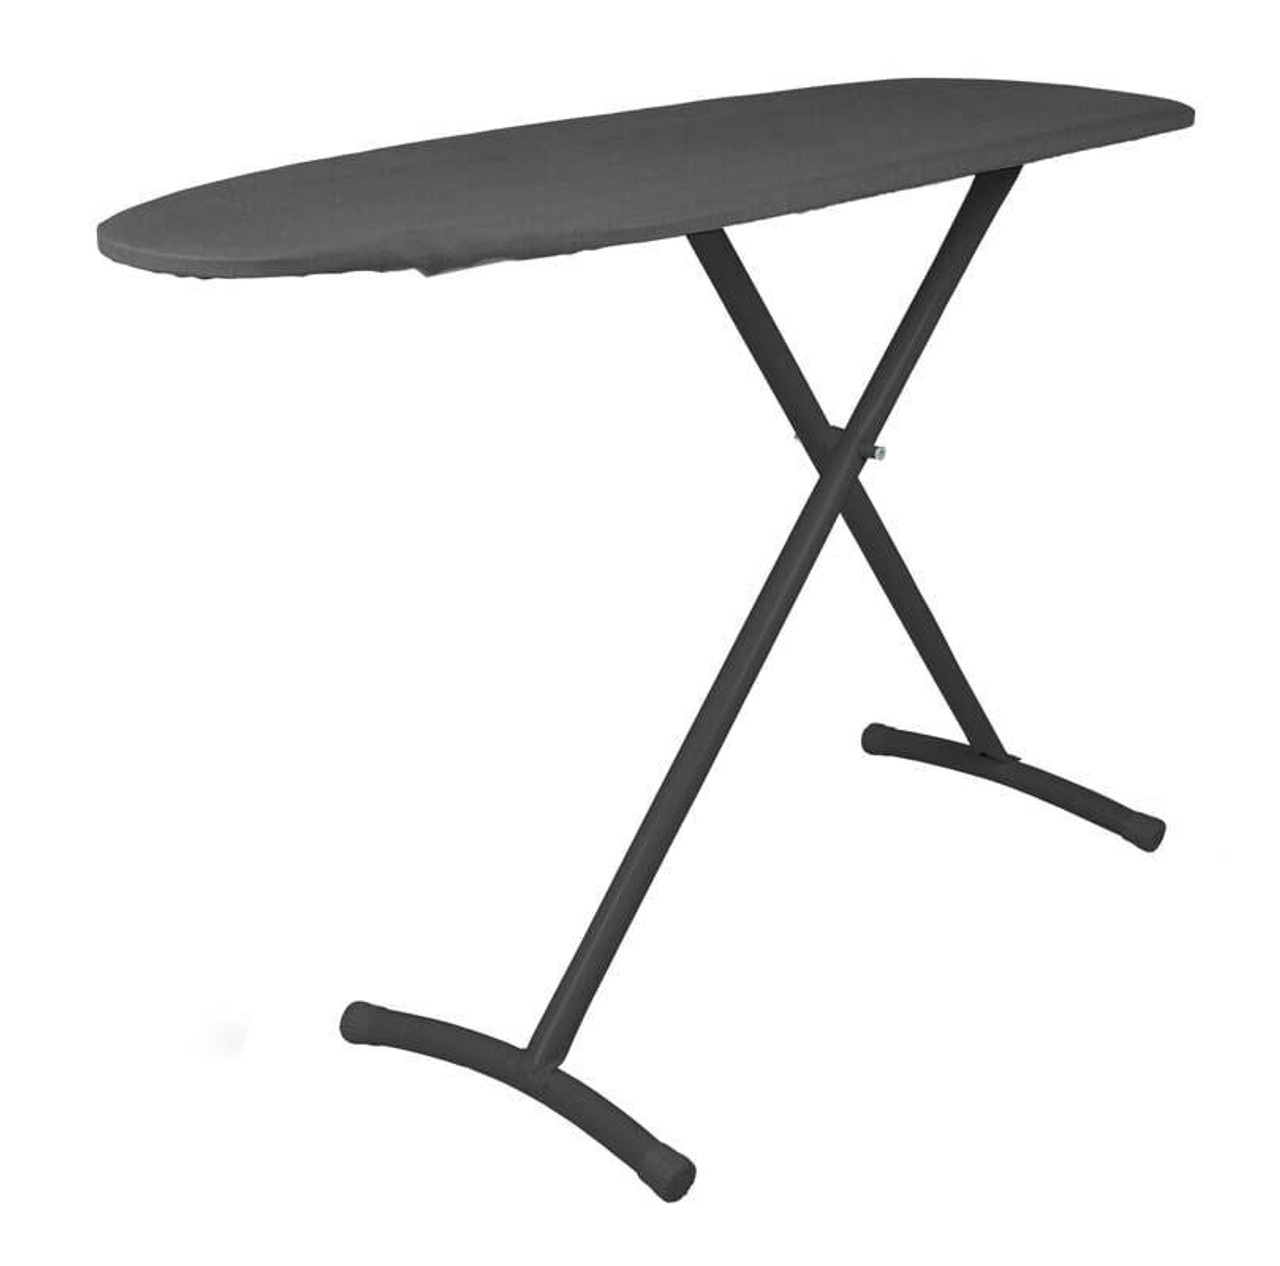 HOSPITALITY 1 SOURCE Contour Ironing Boards